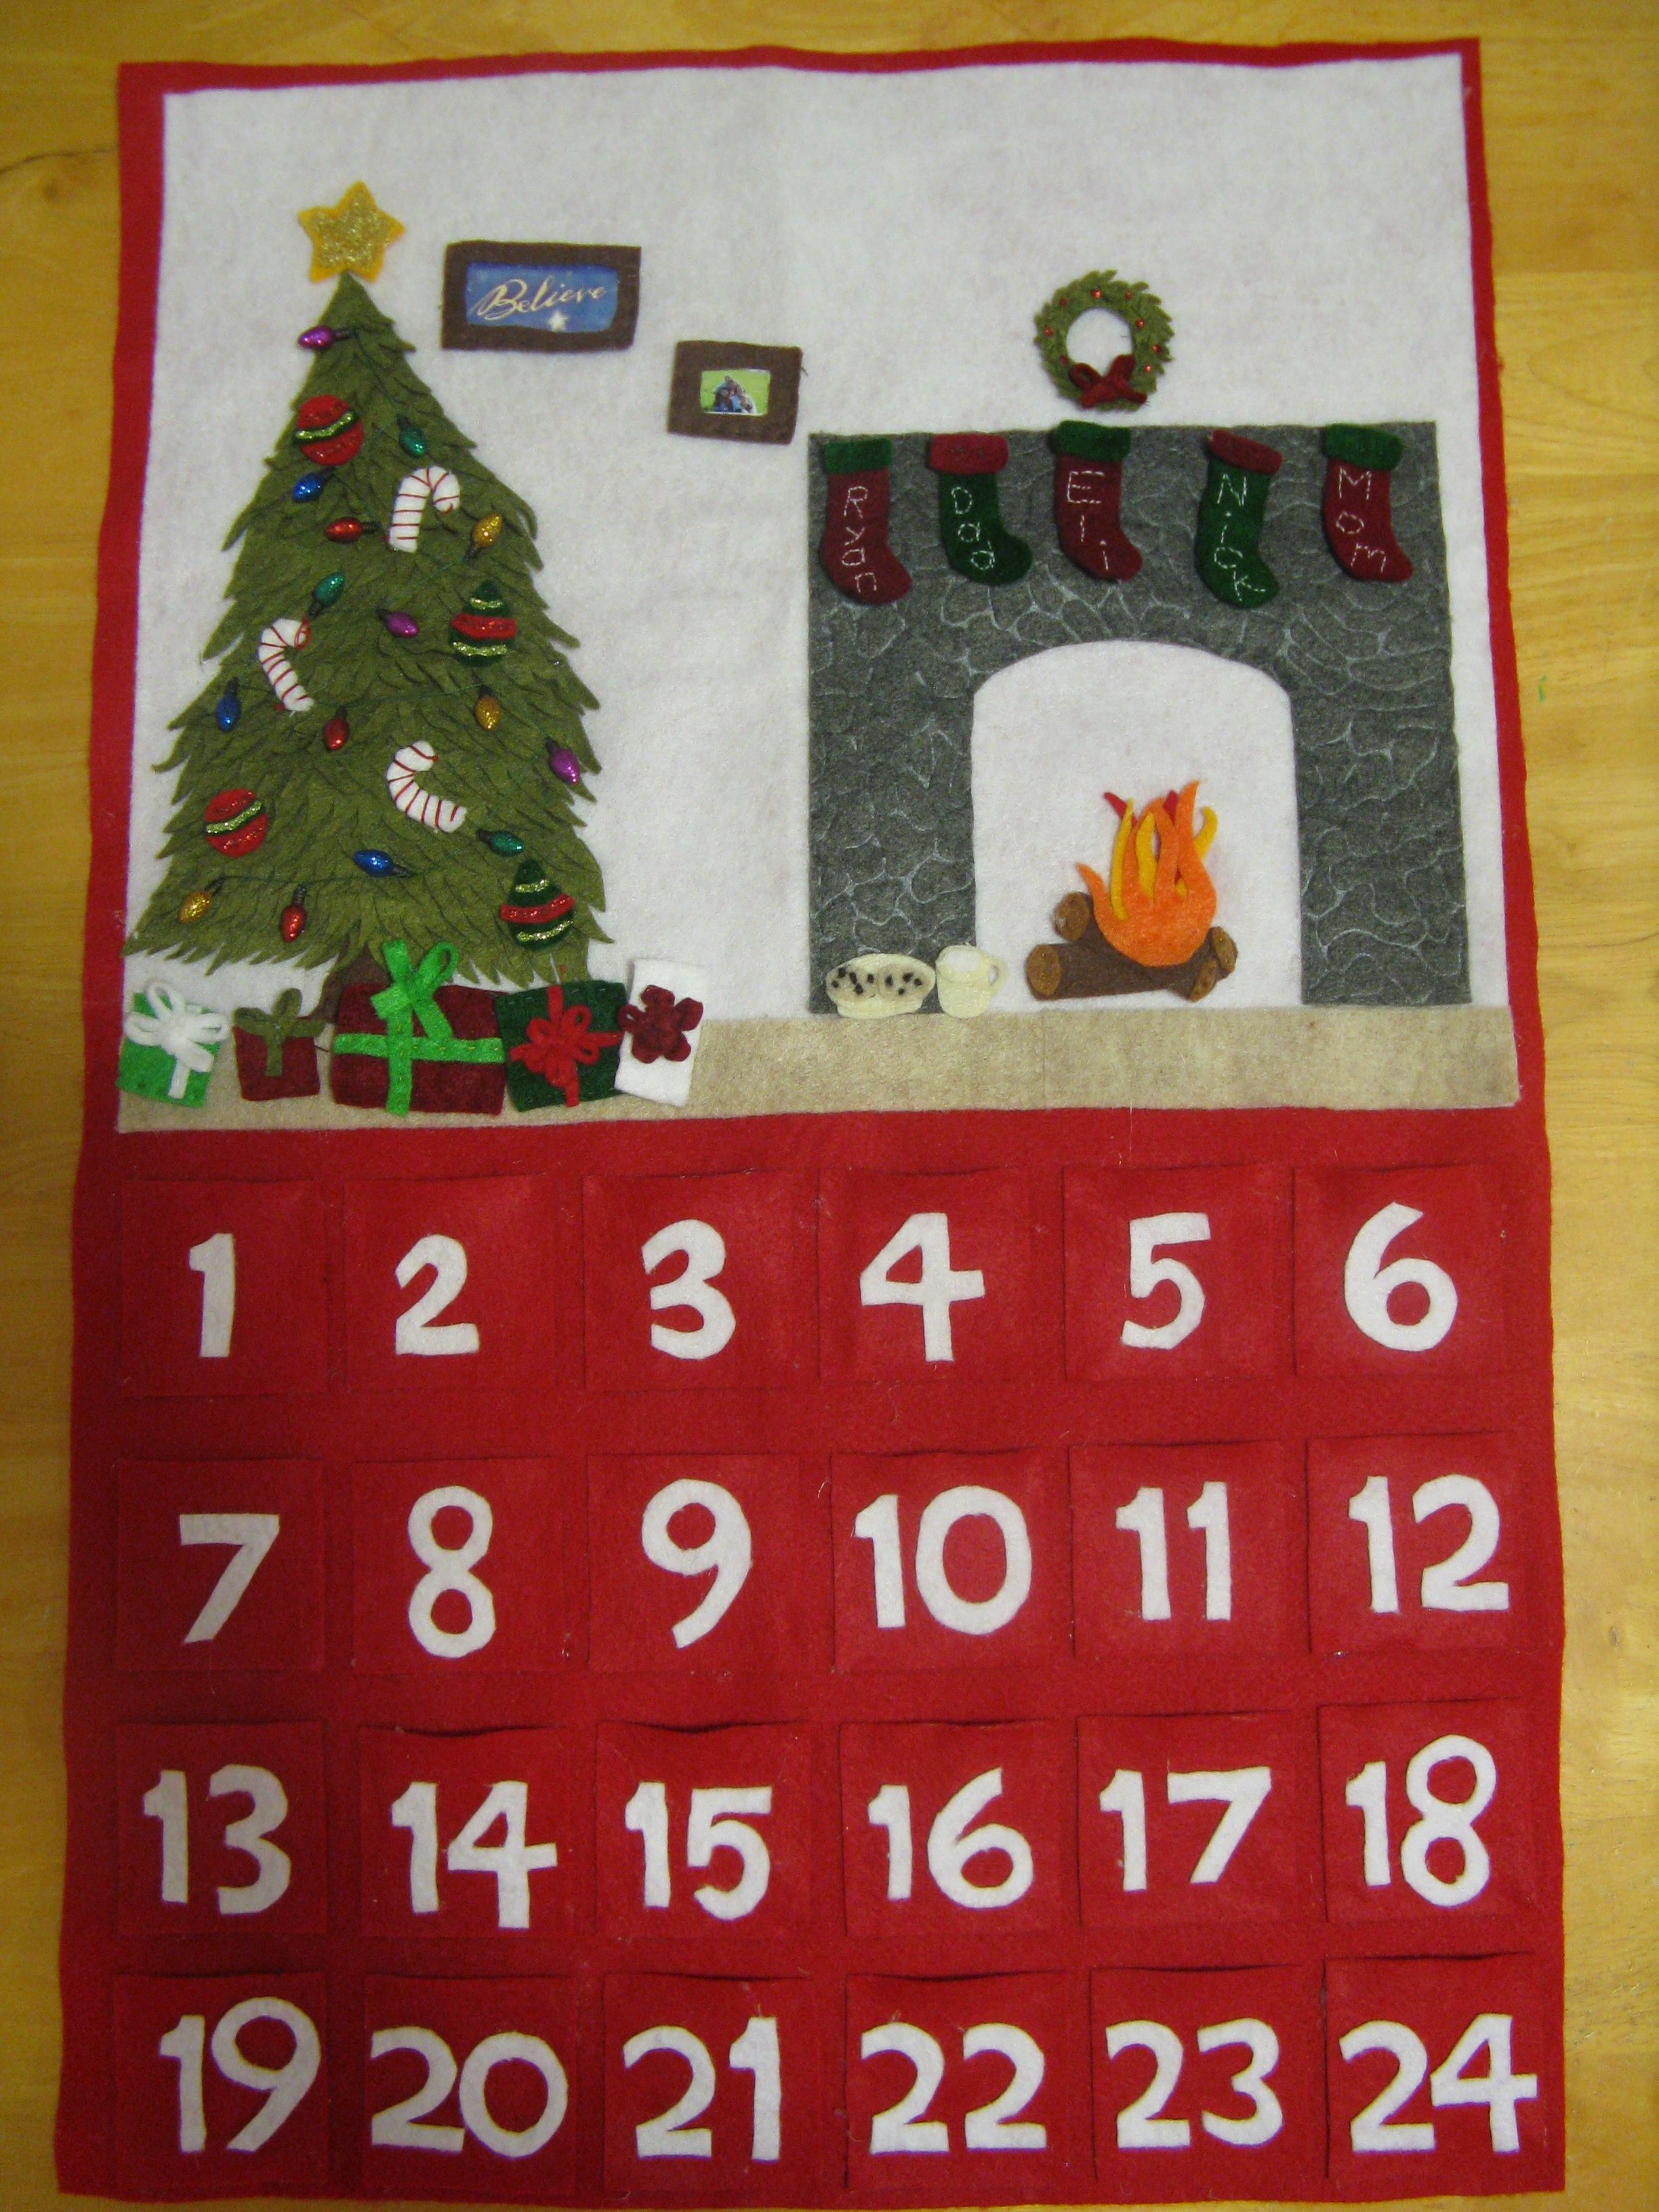 Felt Advent Calendar Empty Room Filled Up With Decorations By Christmas Eve Christmas Advent Felt Advent Calendar Advent Calendar Holiday